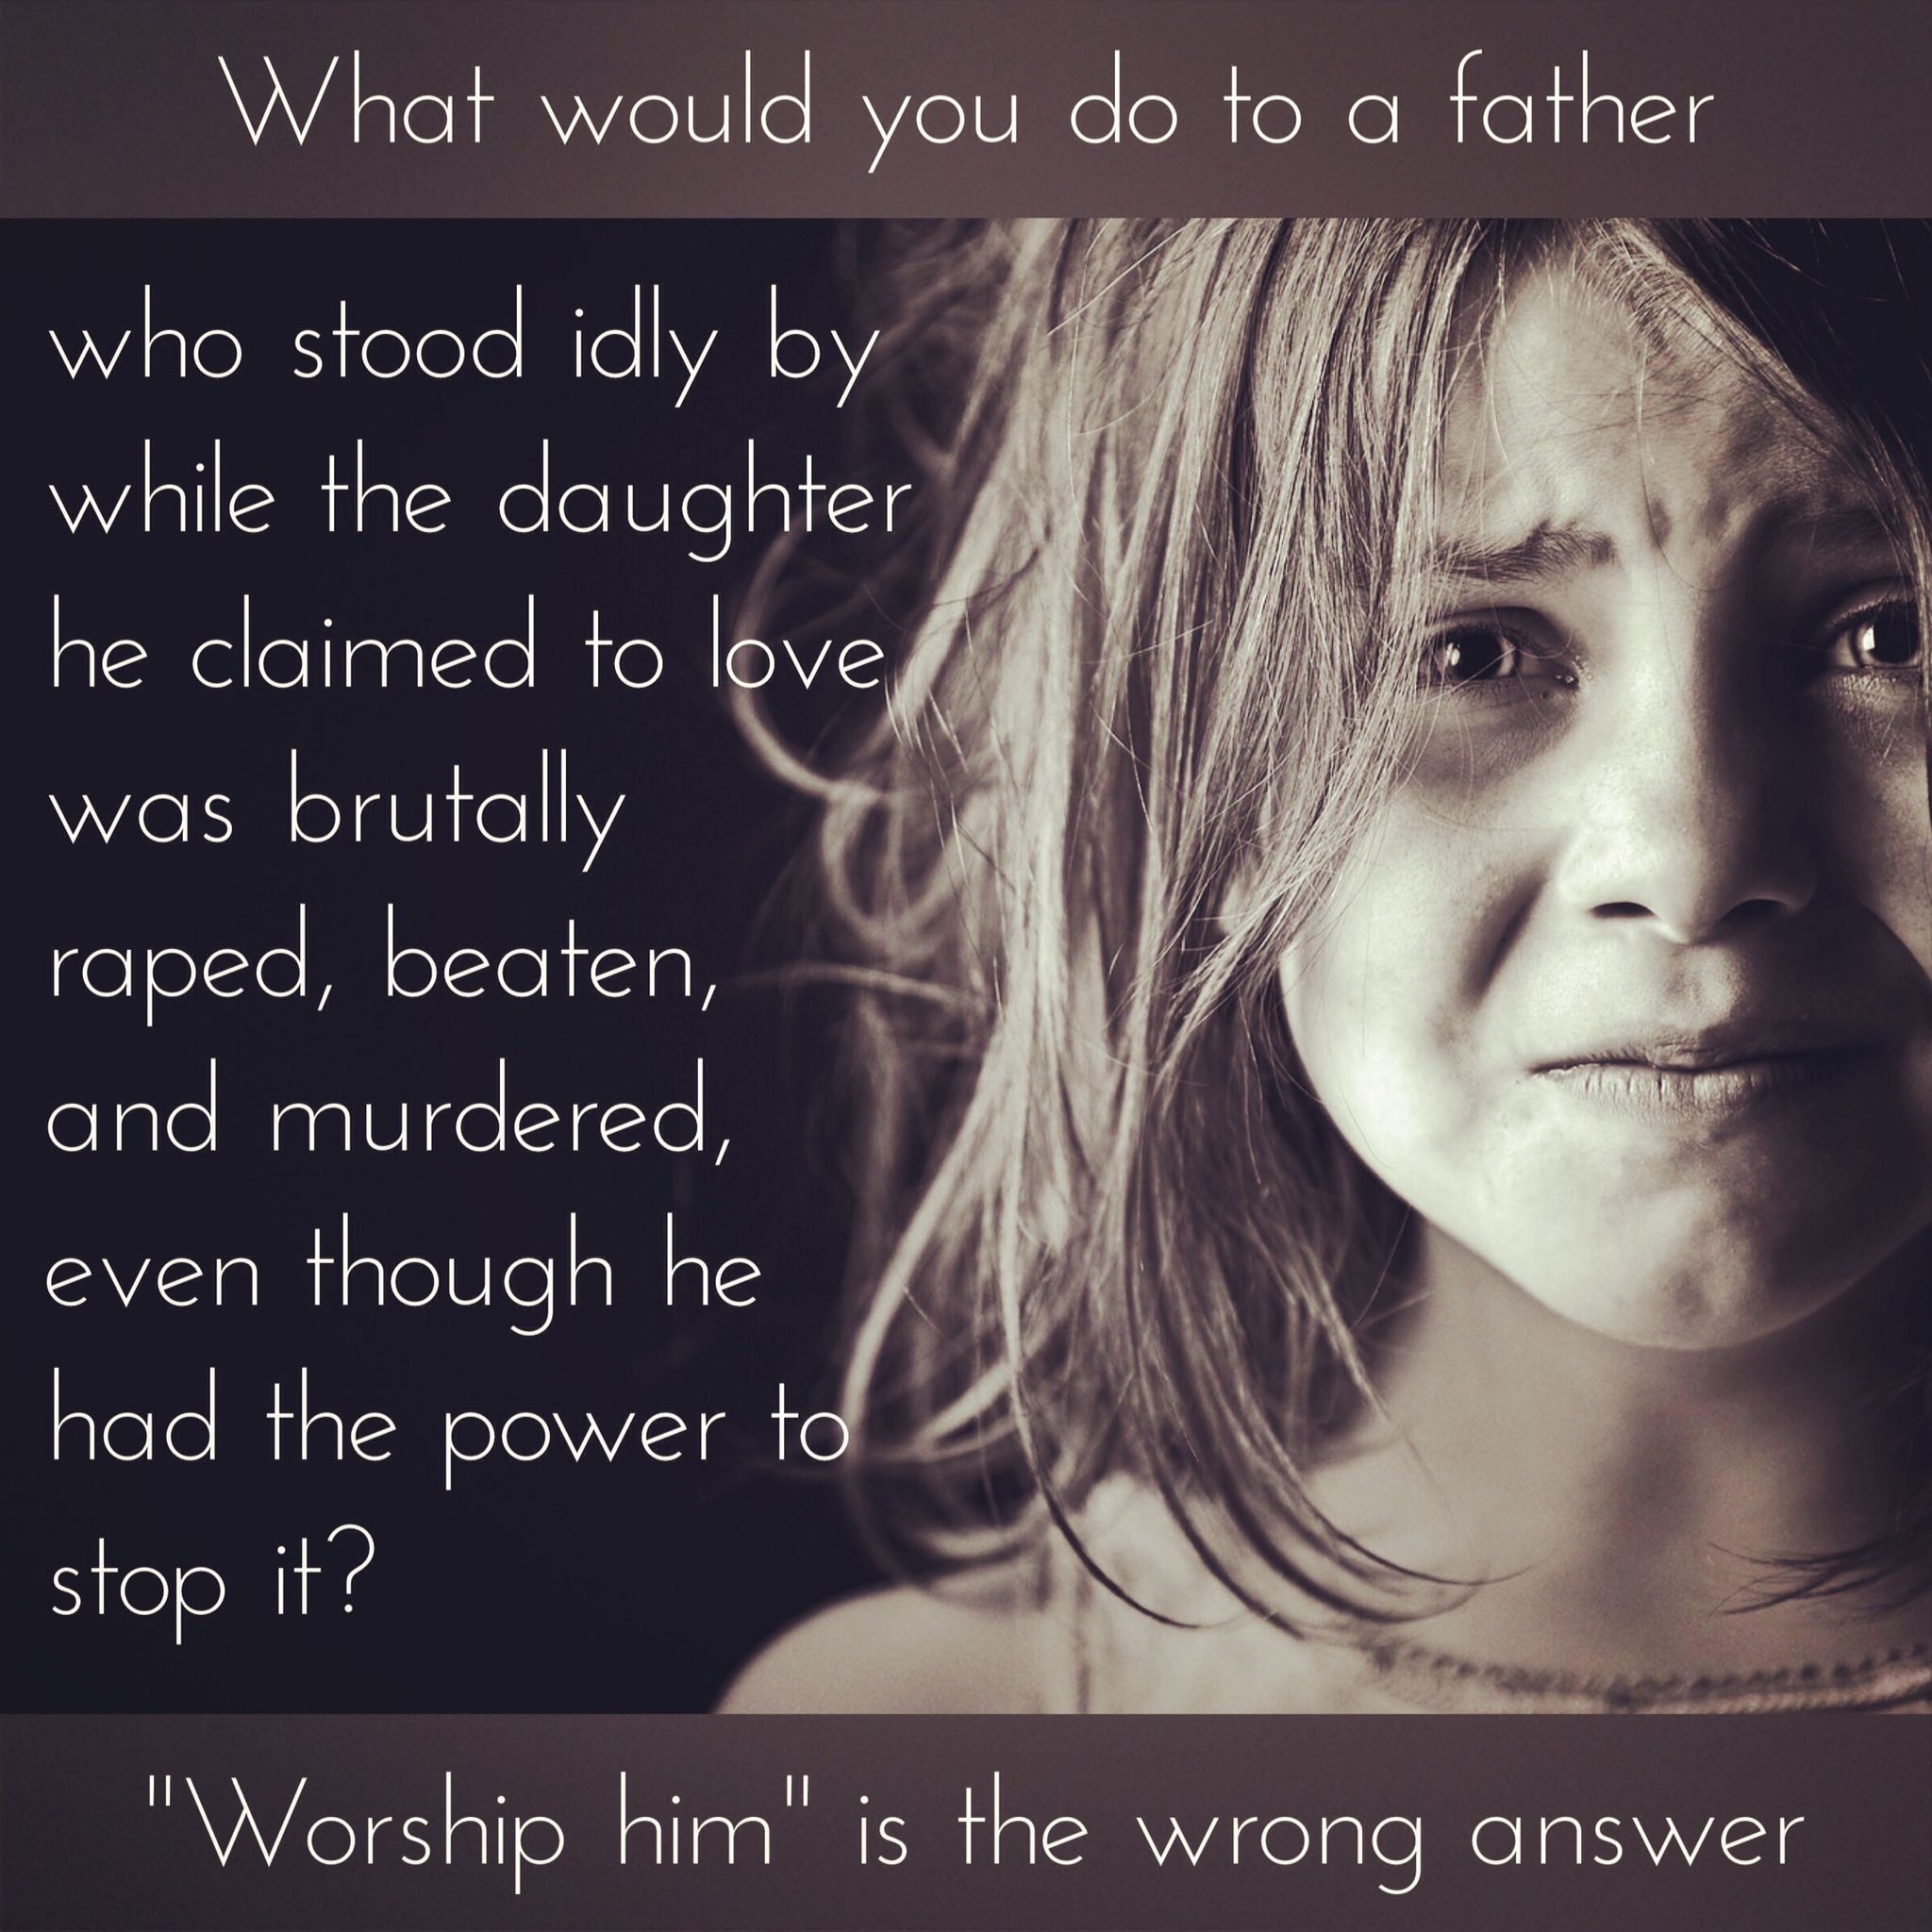 worship him is the wrong answer